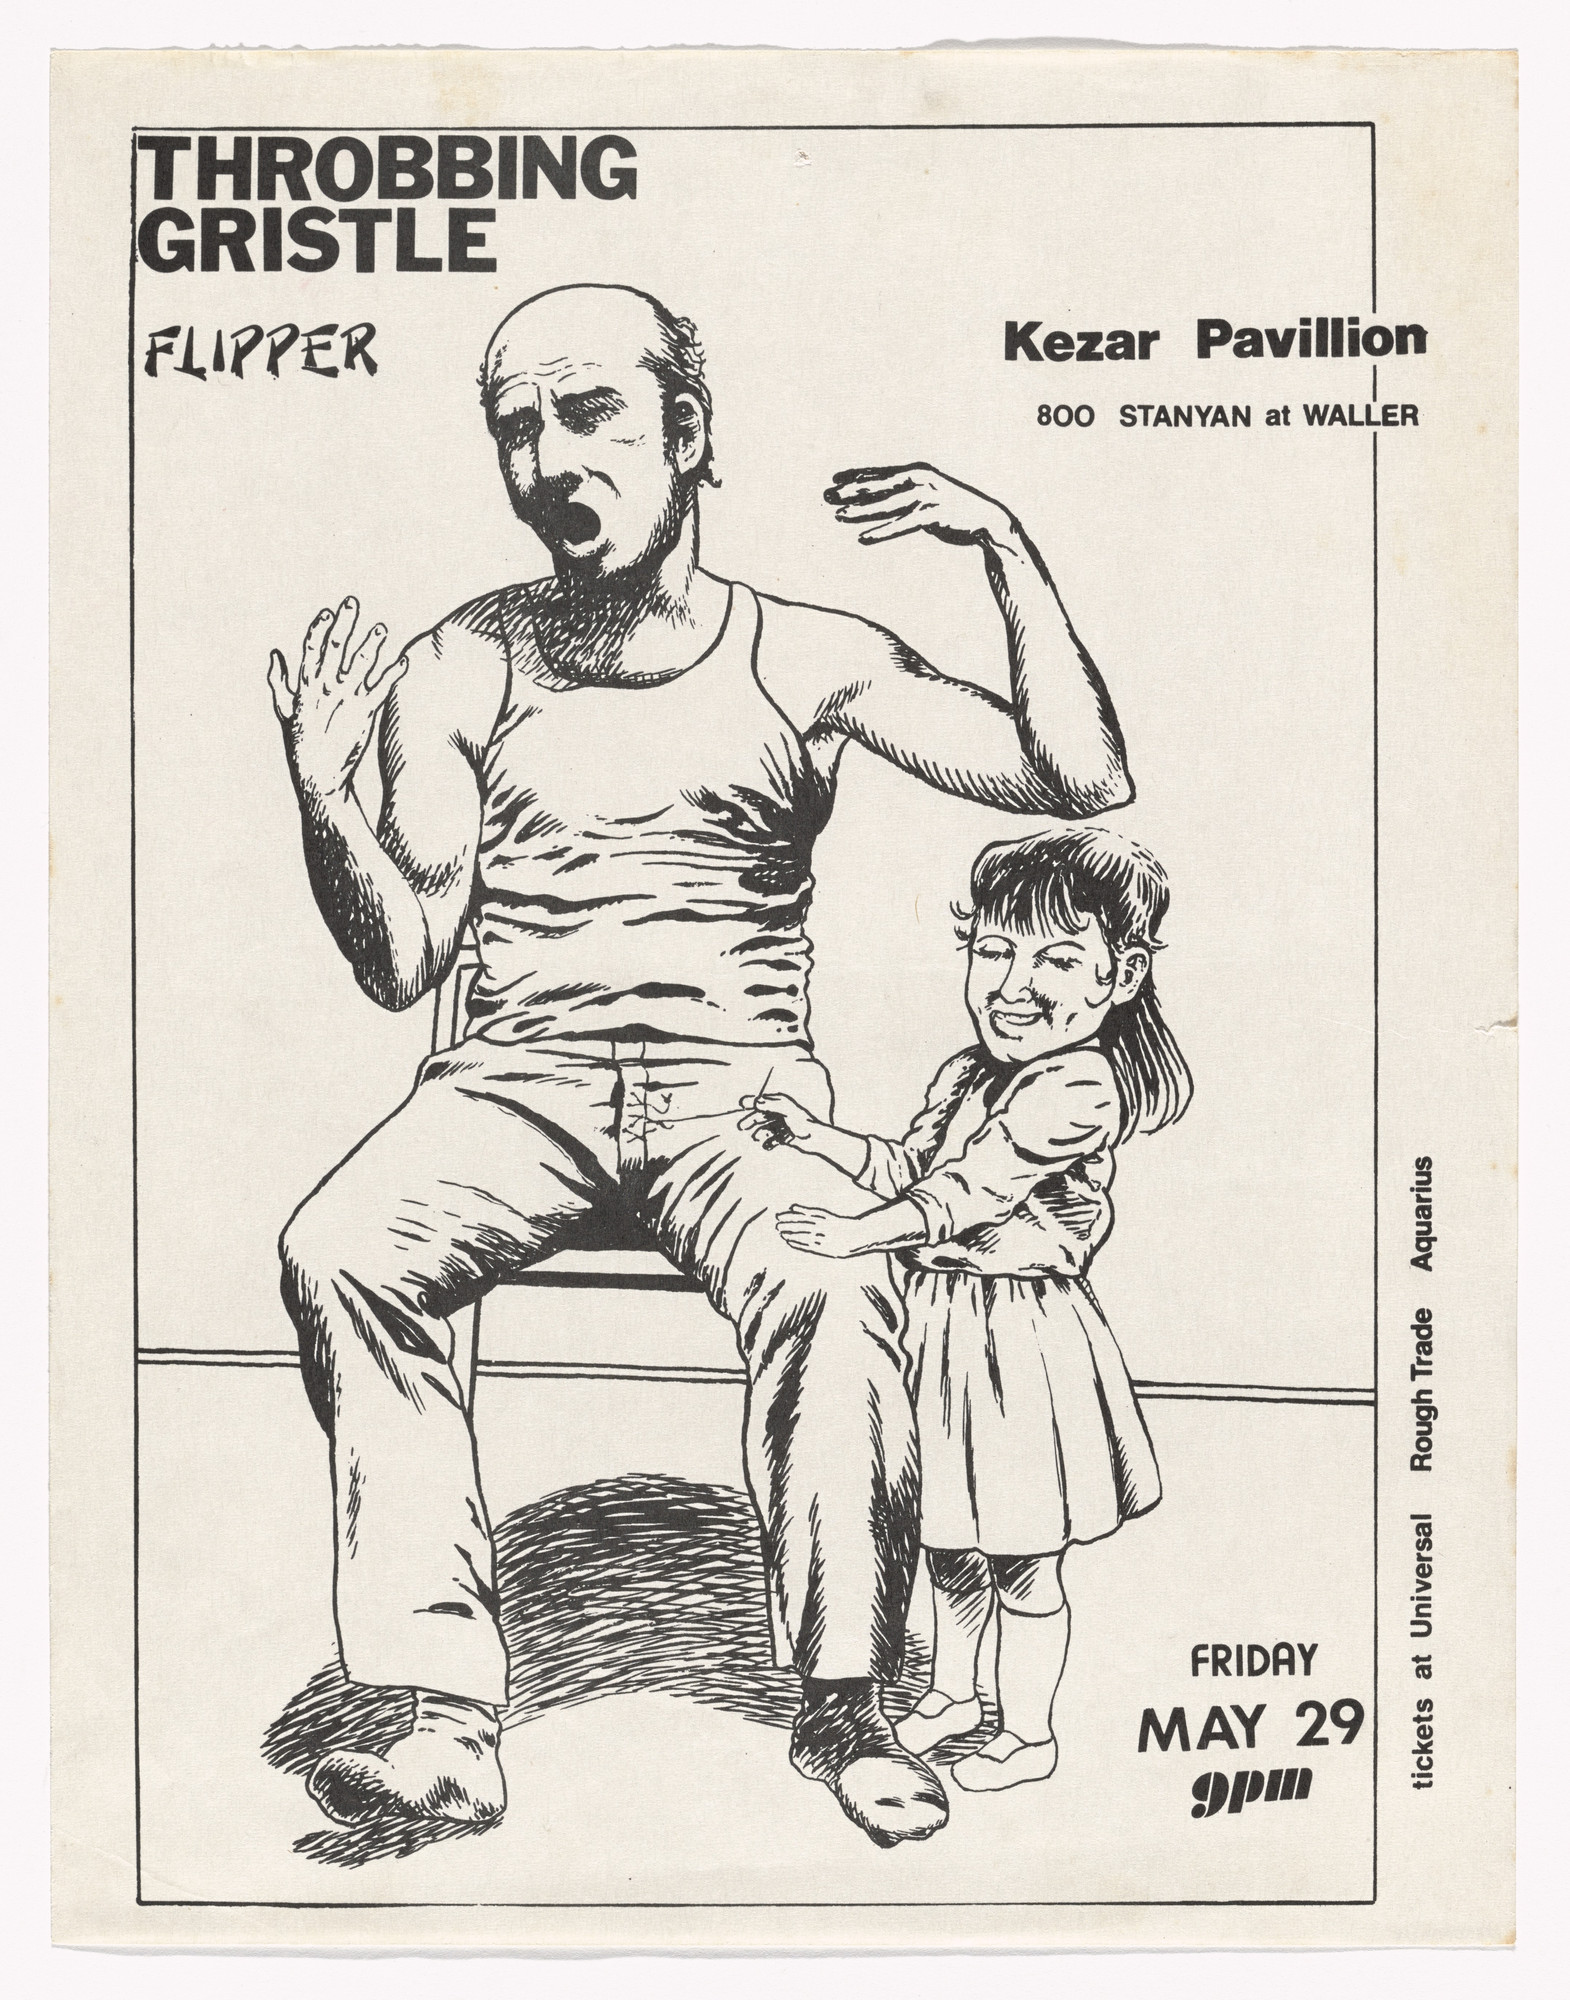 Raymond Pettibon. Throbbing Gristle at Kesar Pavilion. May 29, 1980